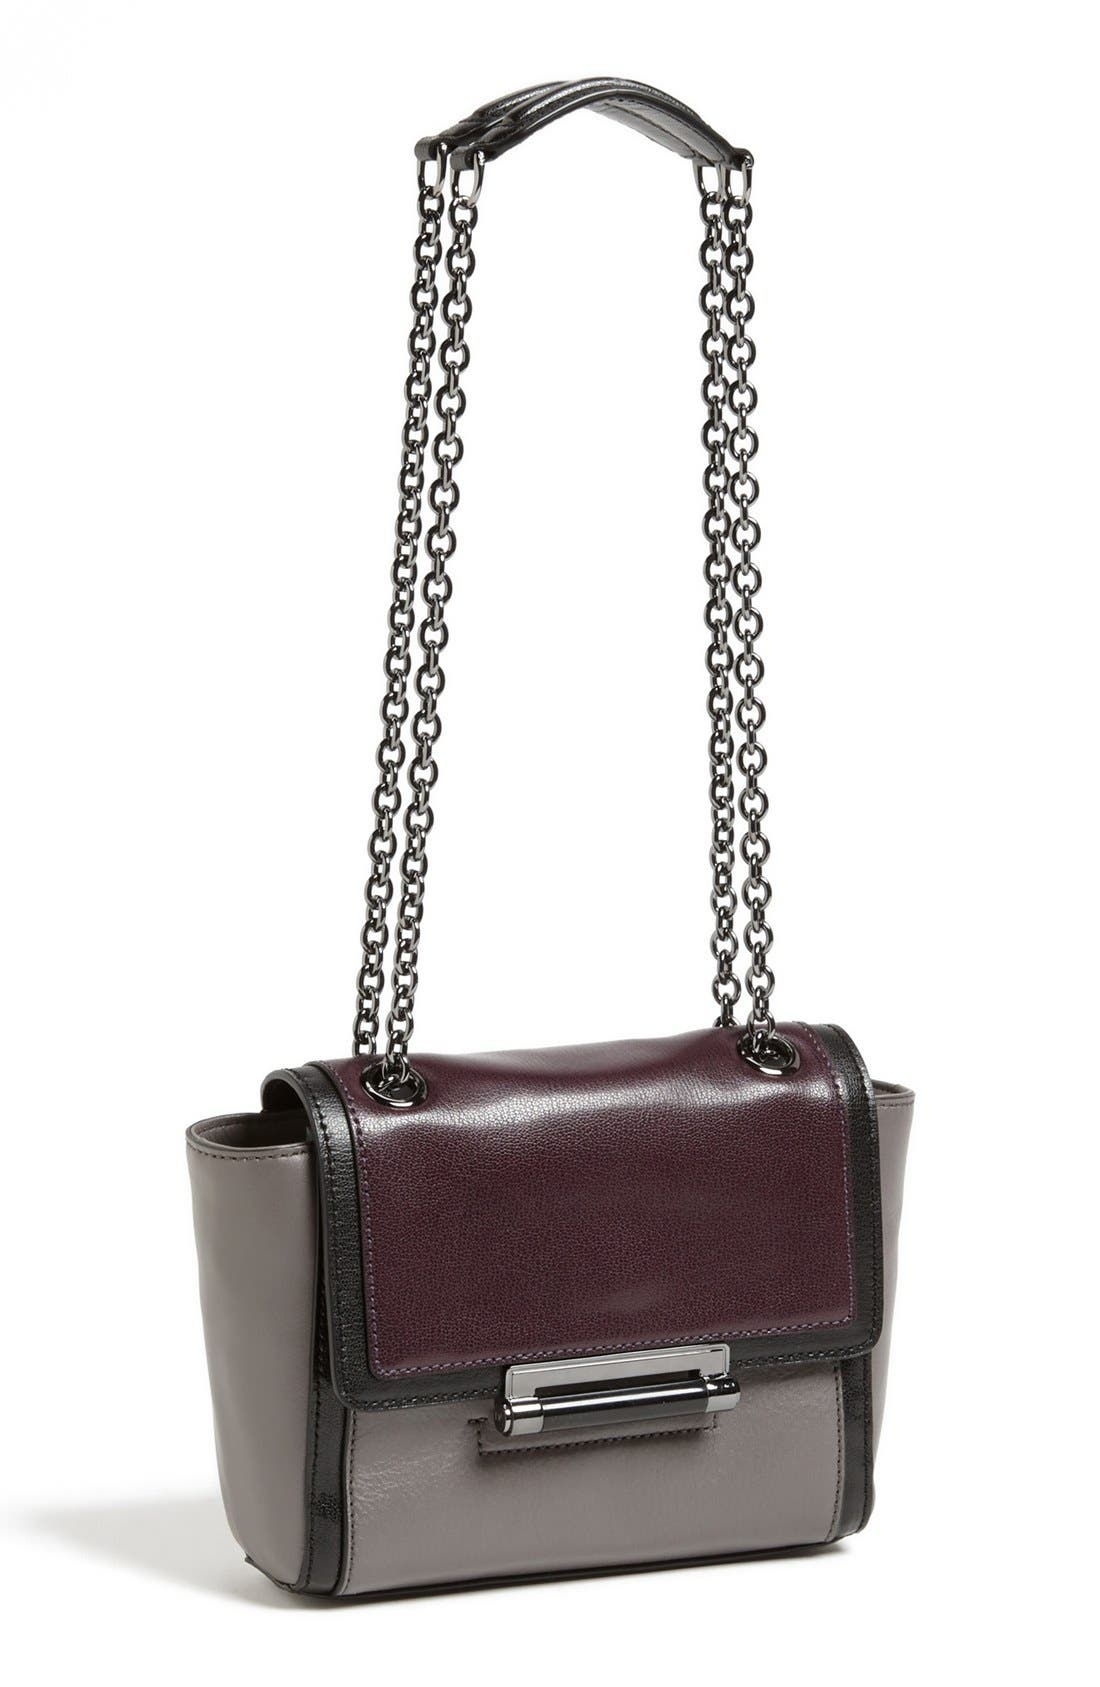 Main Image - Diane von Furstenberg '440 Mini' Colorblock Satchel